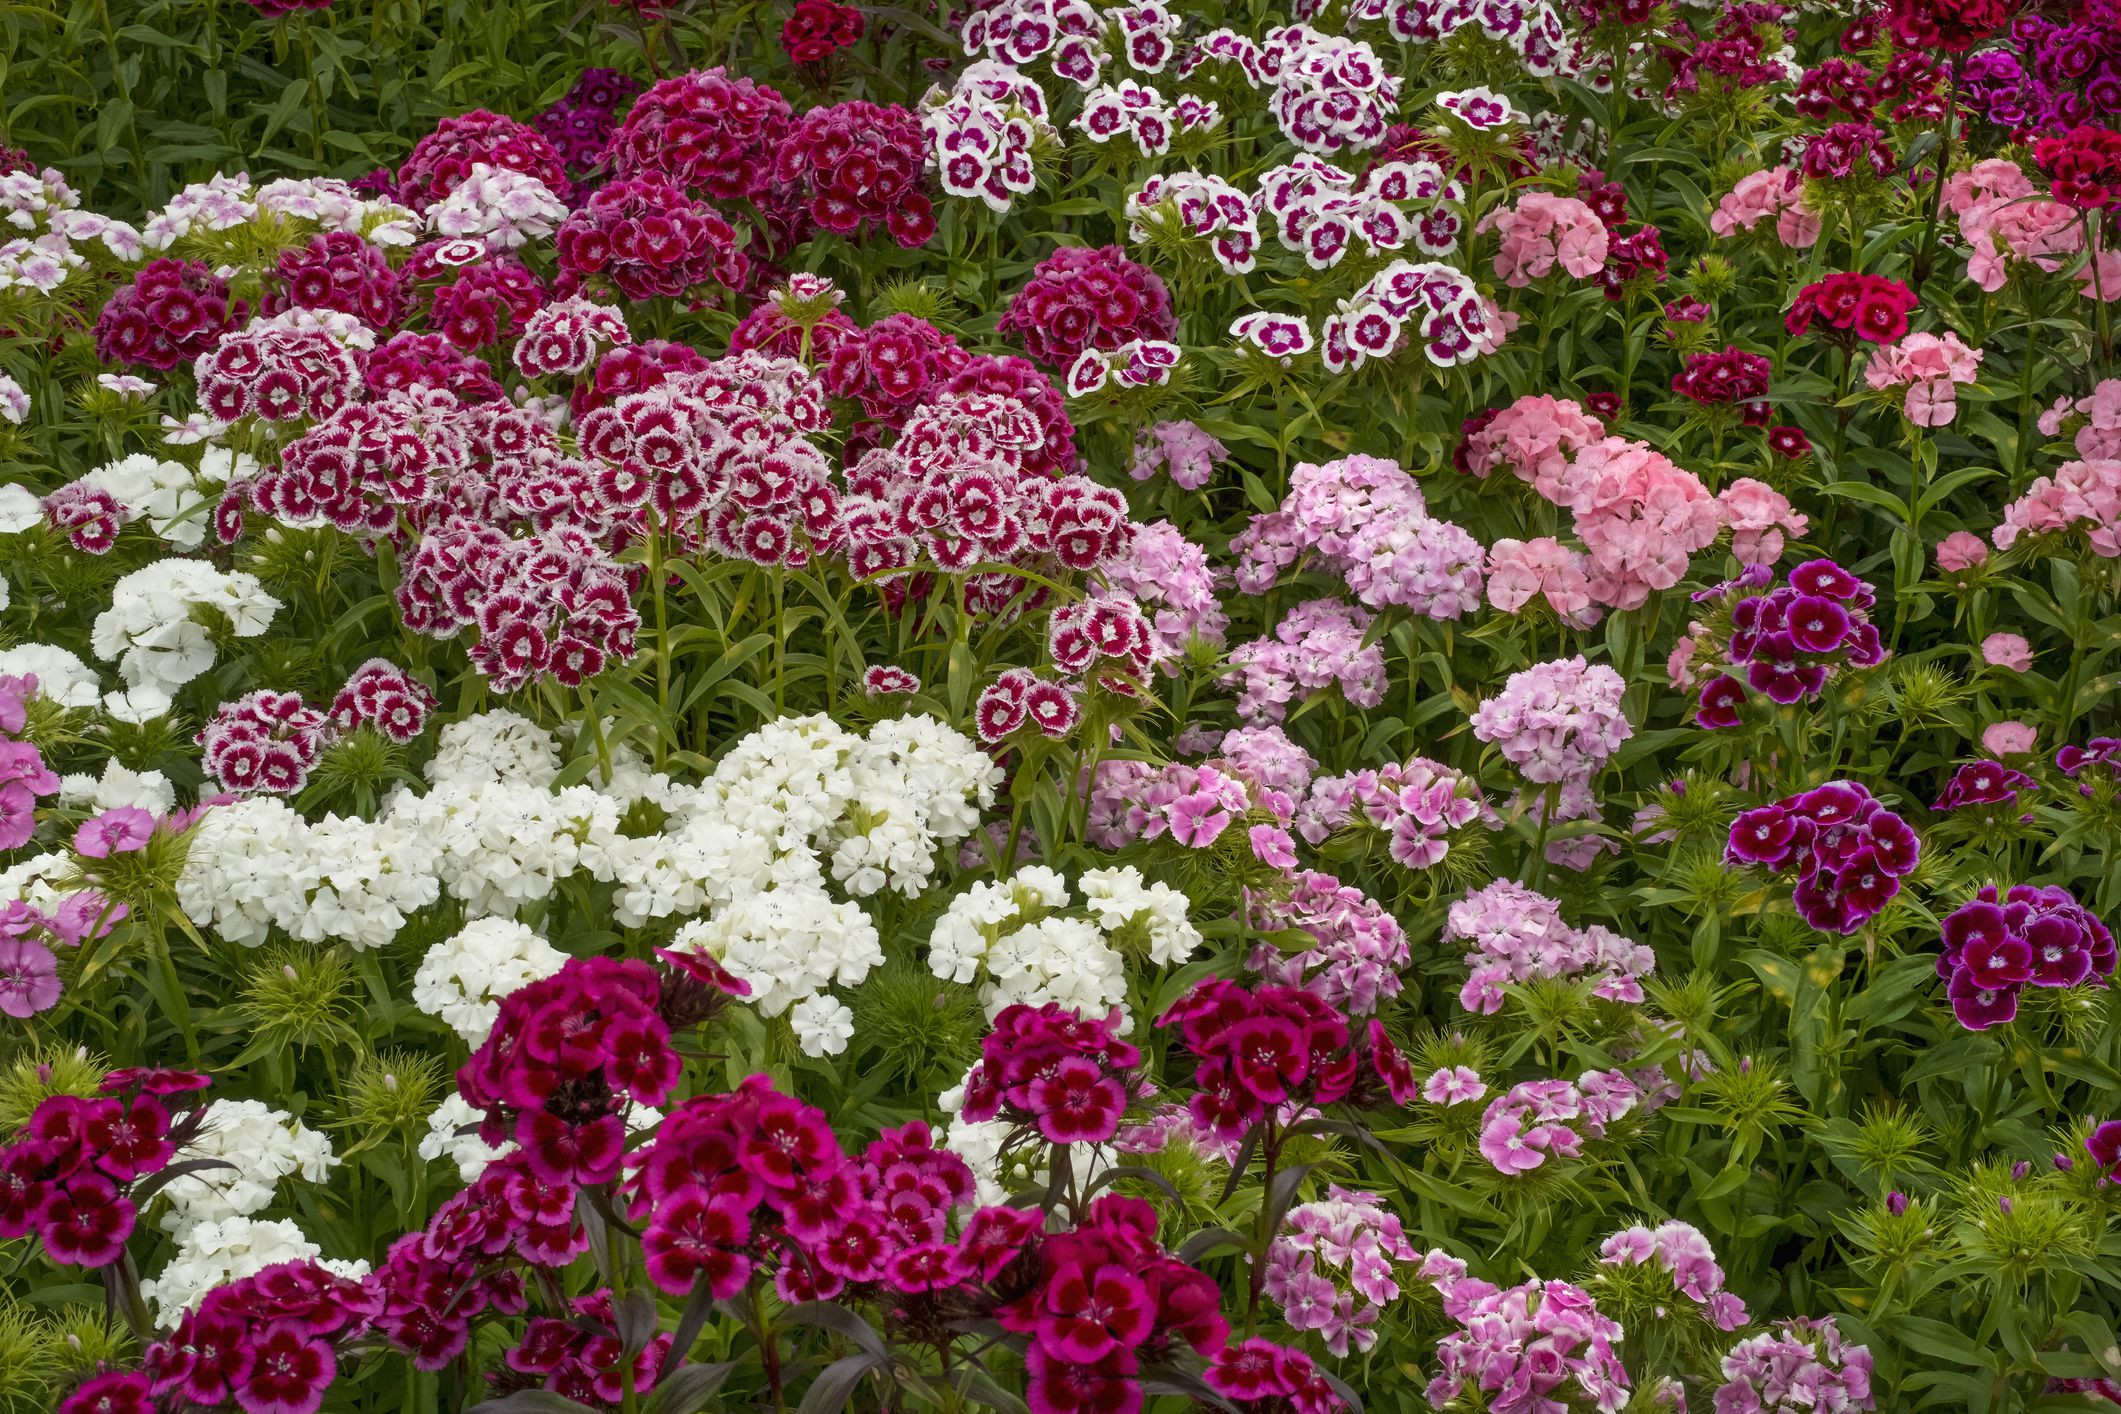 Show Pictures Of Flowers Awesome the Perennial Dianthus Flower